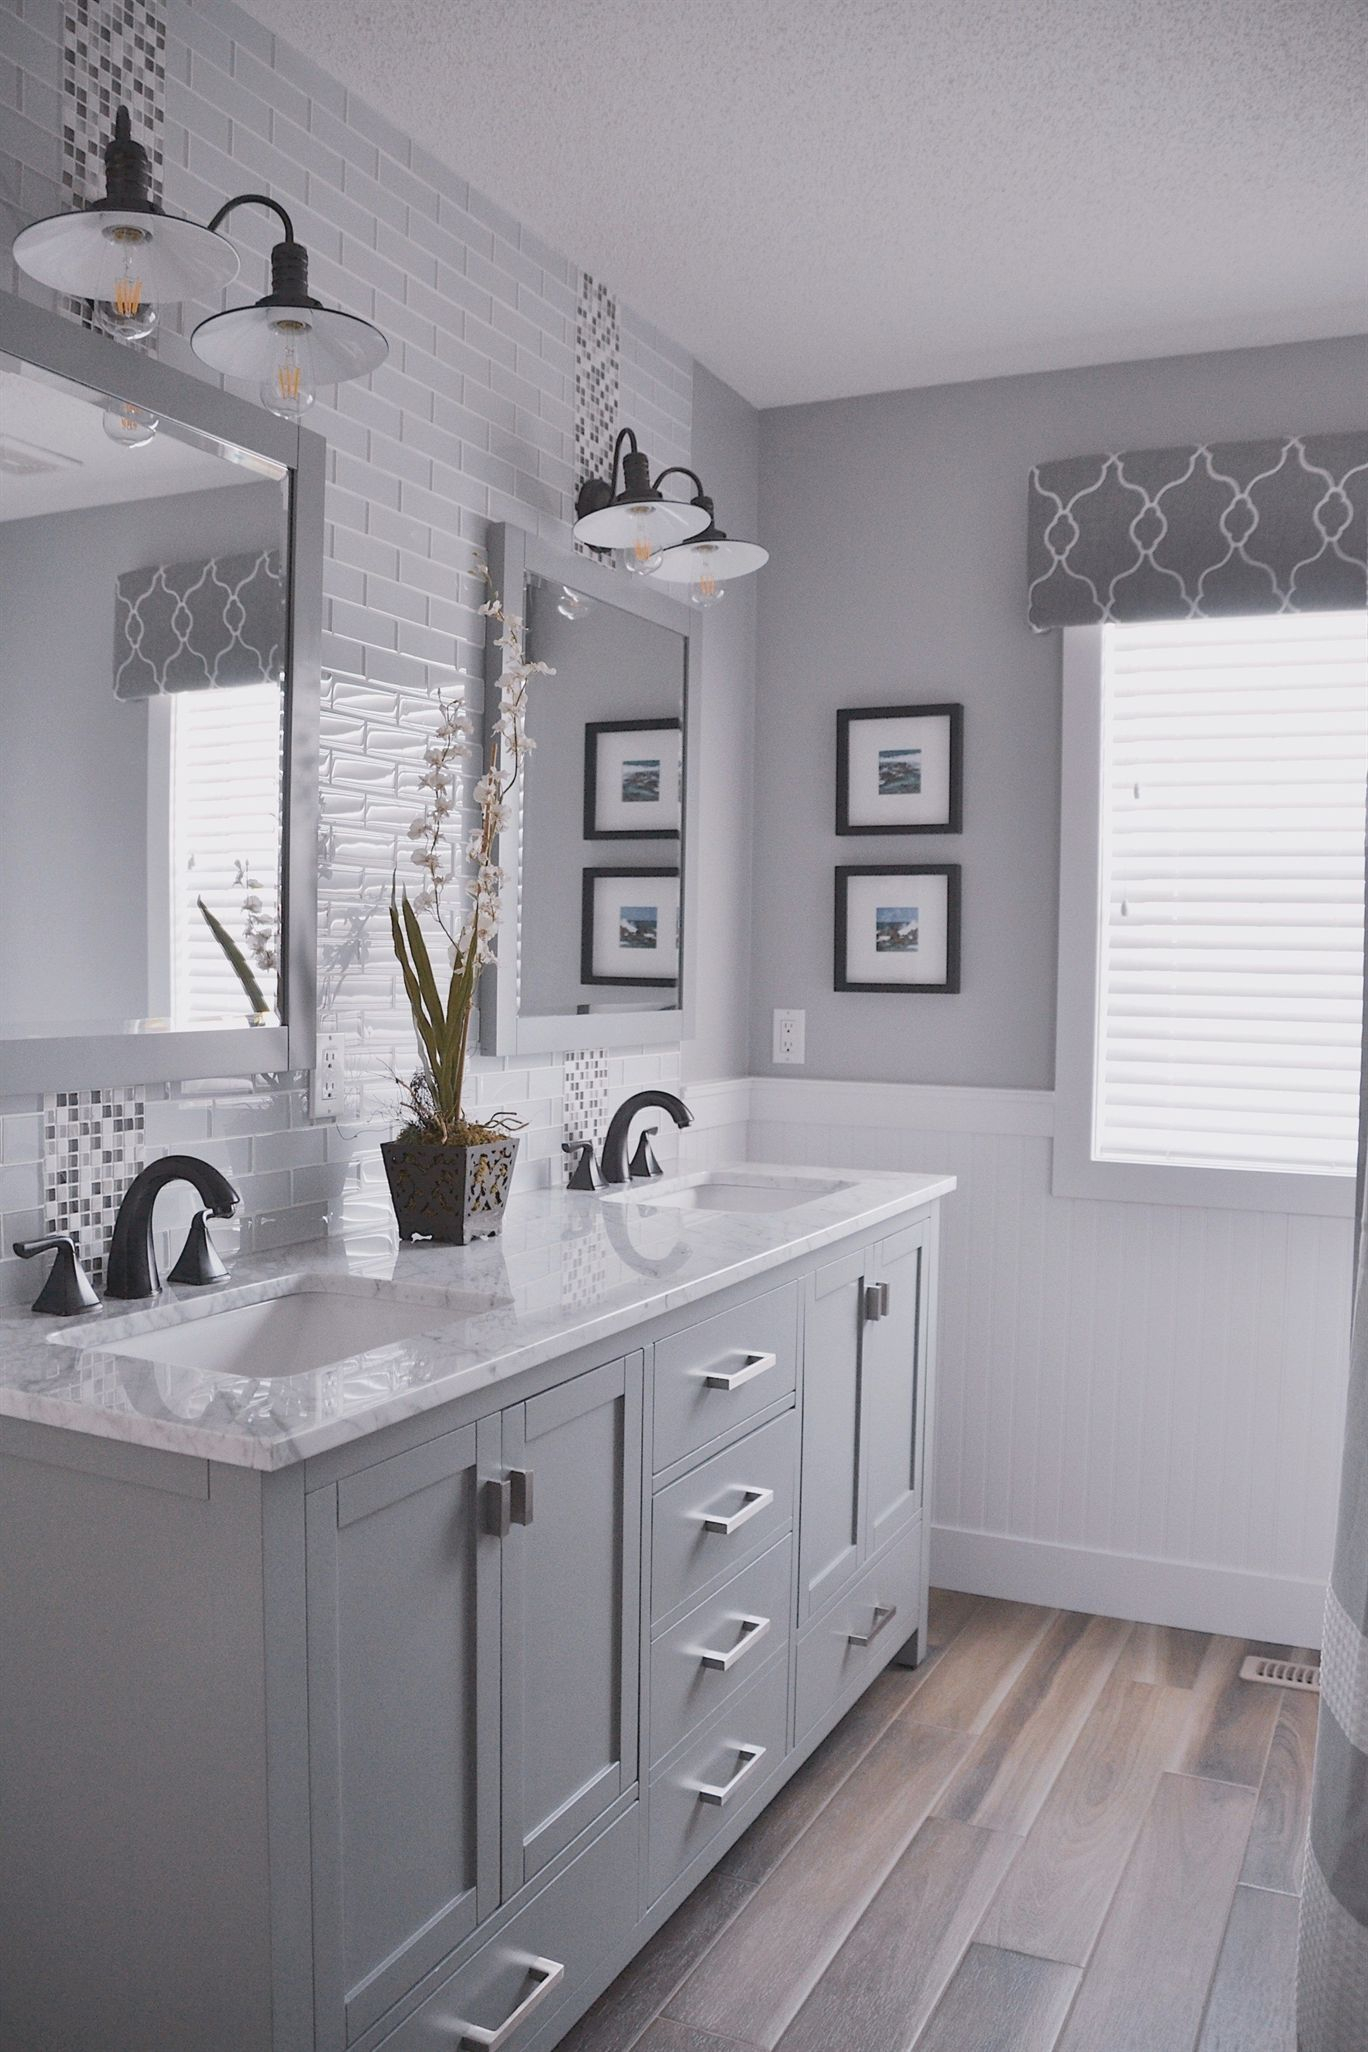 Fascinating Farmhouse Master Bathroom Remodel Ideas To Have Now18